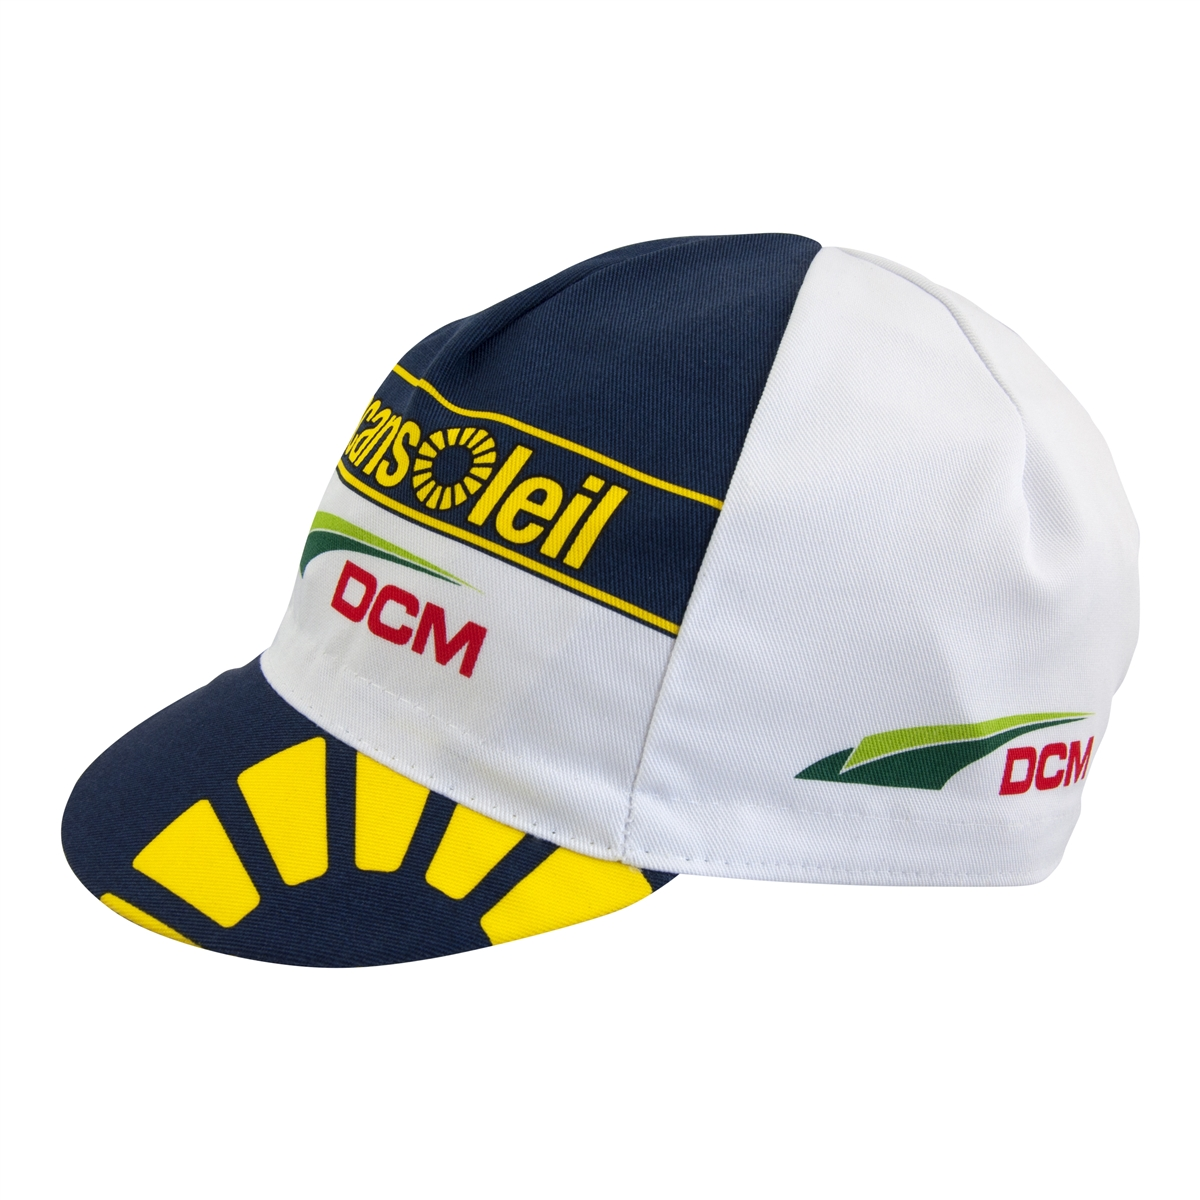 Vacansoleil Pro Team Cotton Cycling Cap 5079a3bc3e77